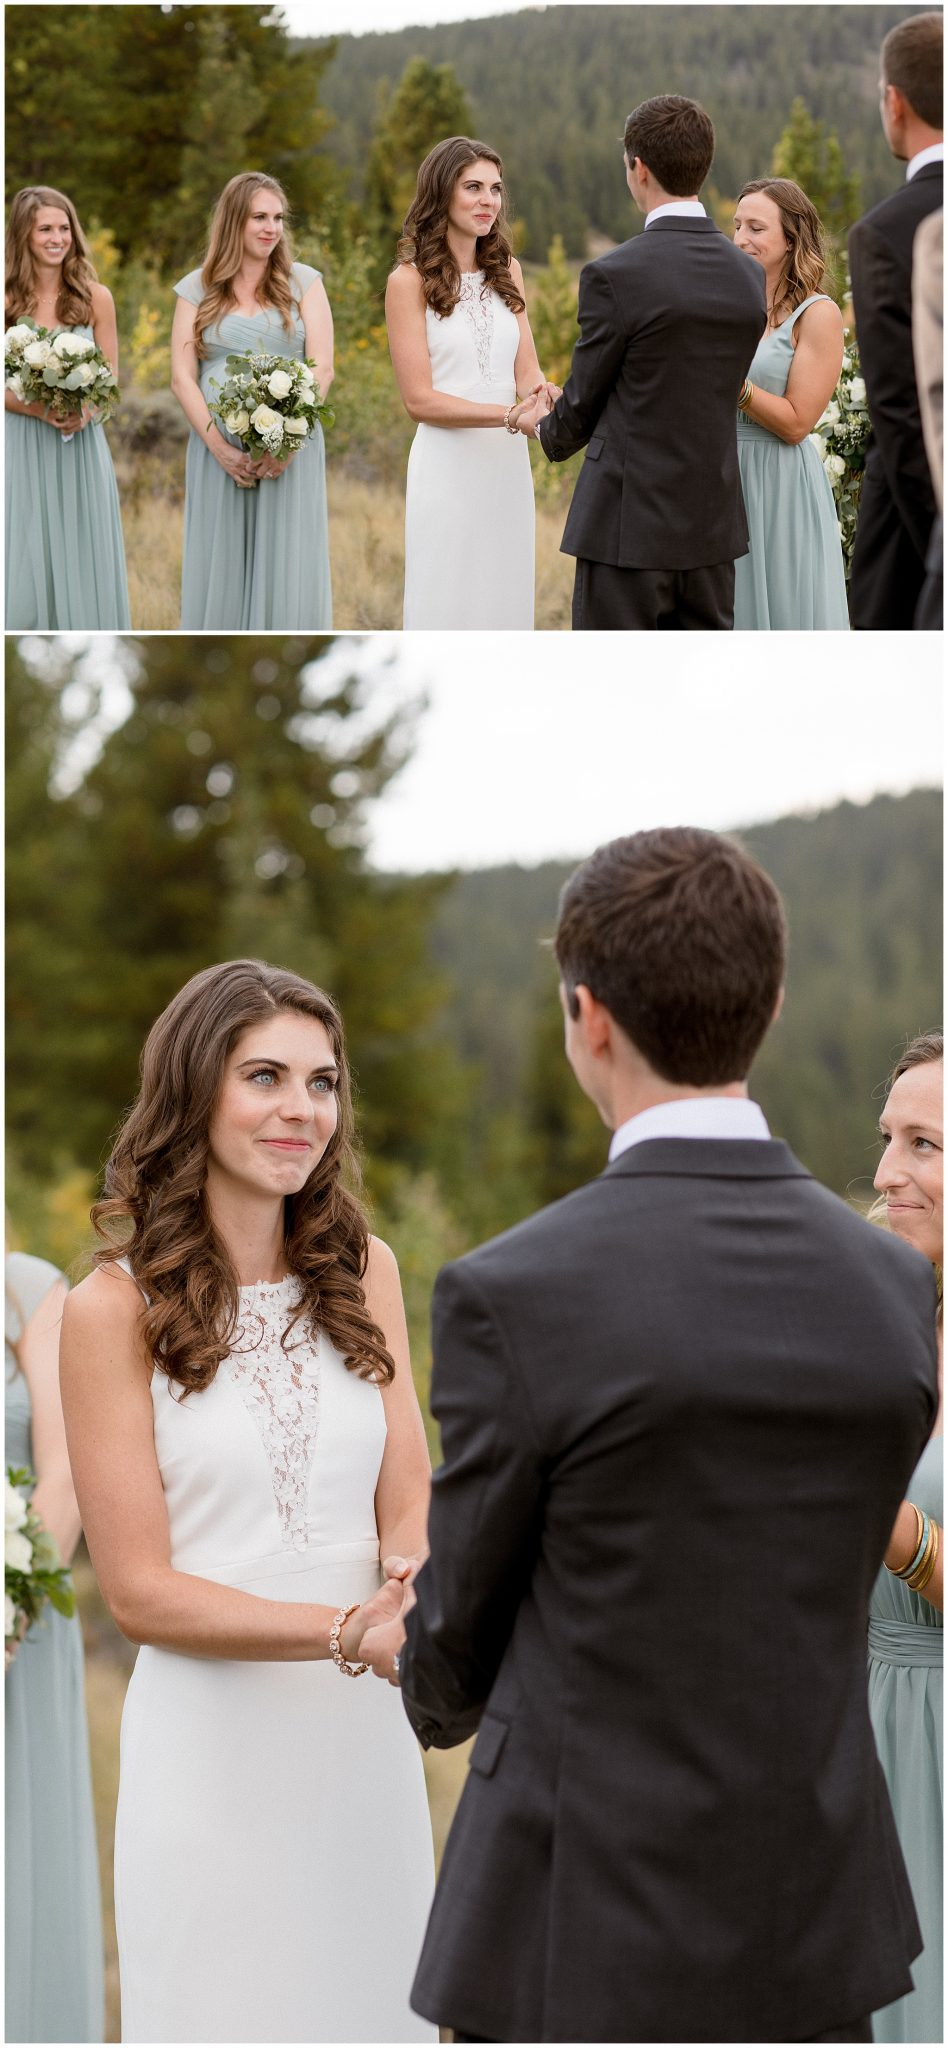 Vow exchange at their small intimate micro wedding in Breckenridge Colorado